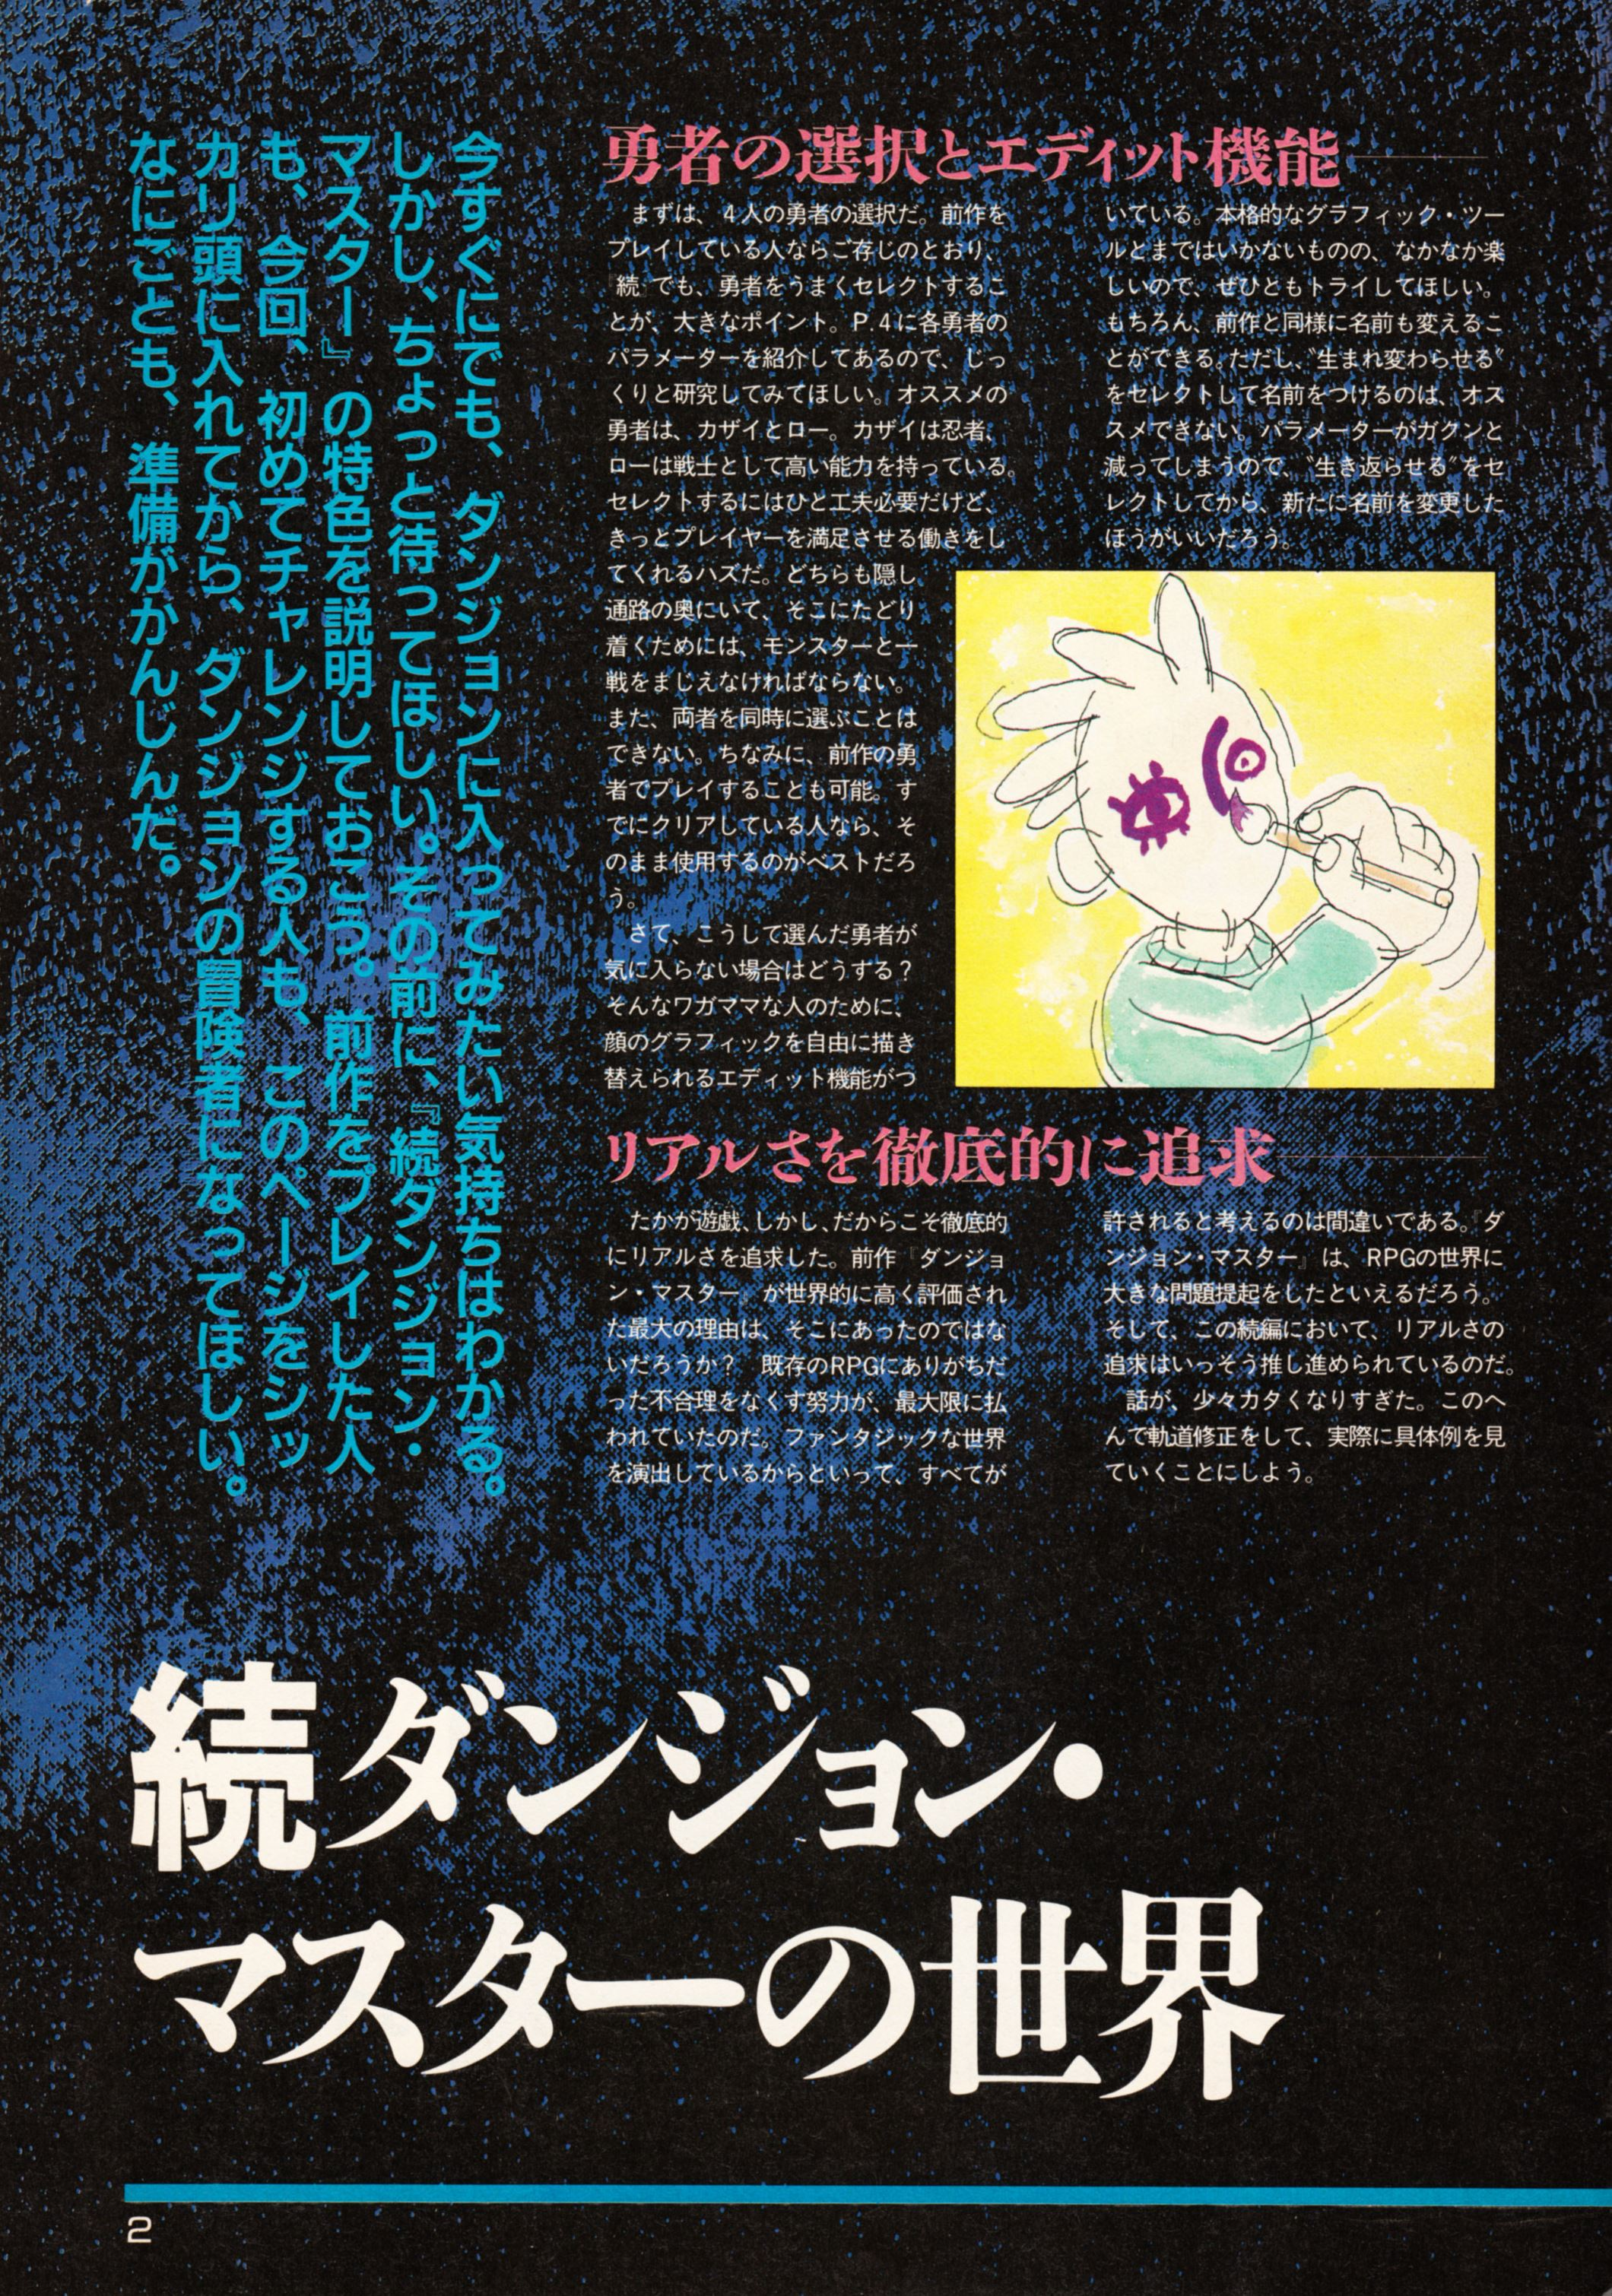 Supplement 1 - Chaos Strikes Back Companion Guide Guide published in Japanese magazine 'Popcom', Vol 9 No 2 01 February 1991, Page 4